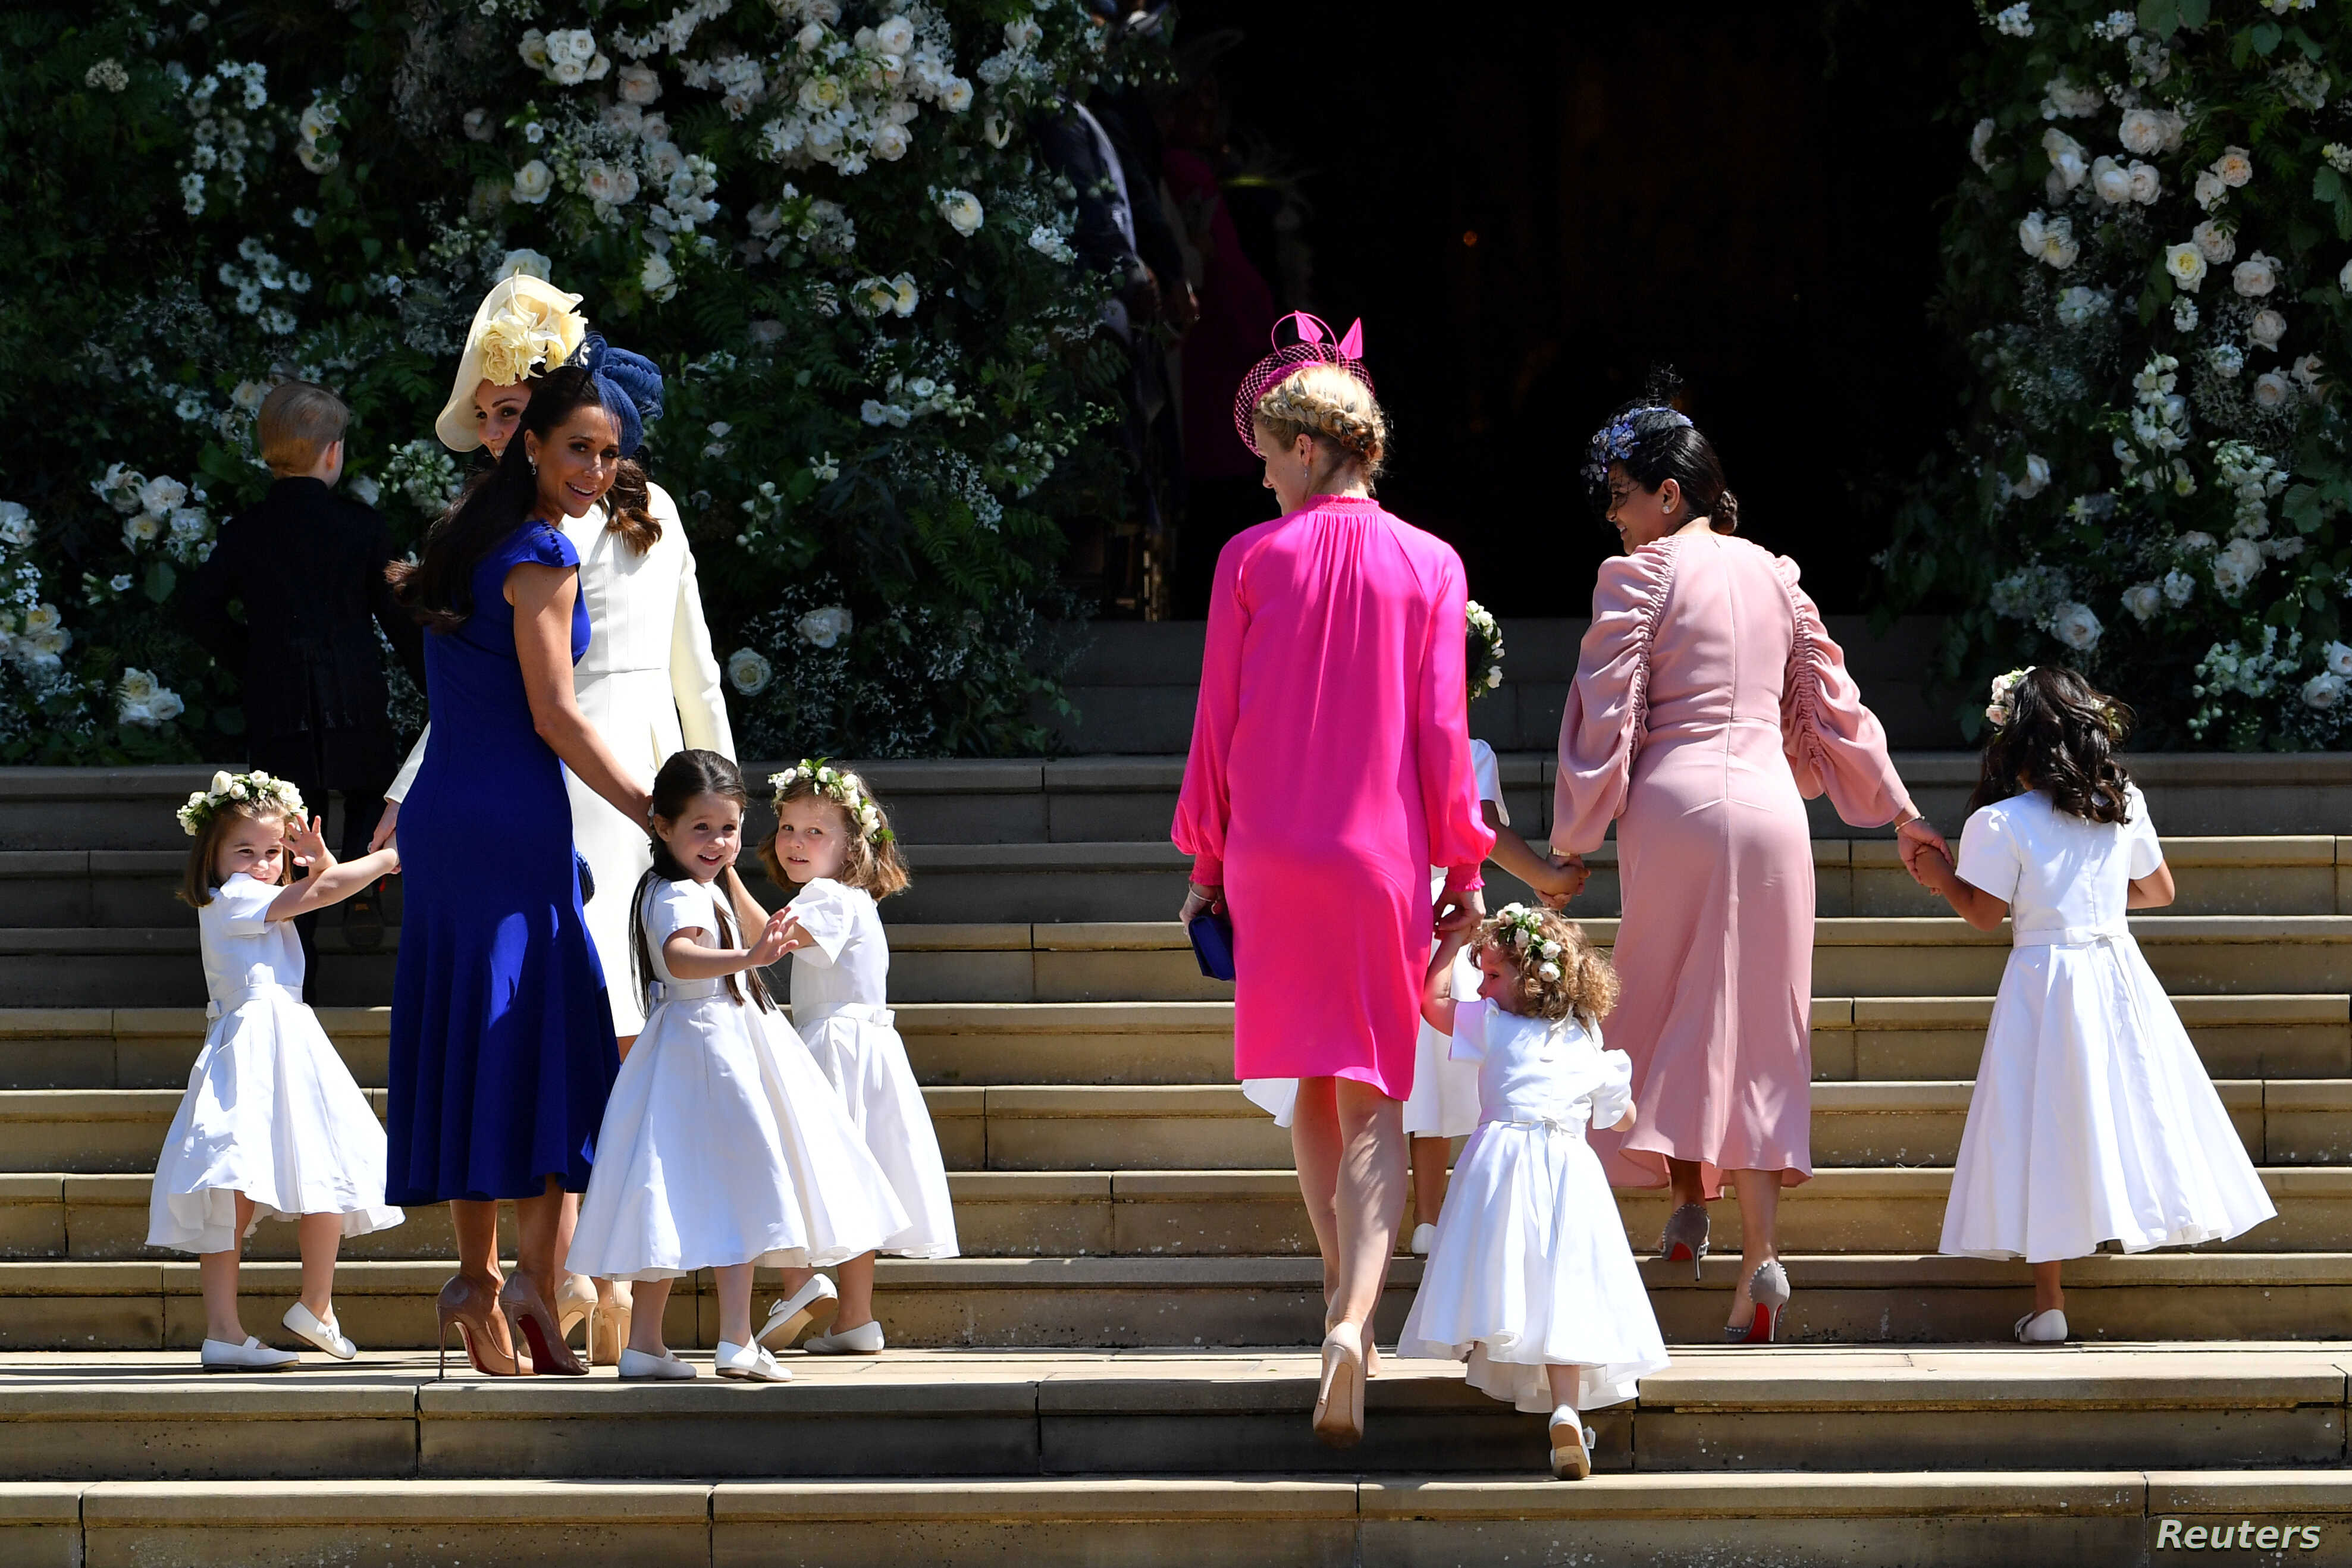 Britain's Catherine, Duchess of Cambridge and Meghan Markle's friend, Canadian fashion stylist Jessica Mulroney holds bridesmaids hands as they arrive for the wedding ceremony of Britain's Prince Harry, Duke of Sussex and U.S. actress Meghan Markle a...